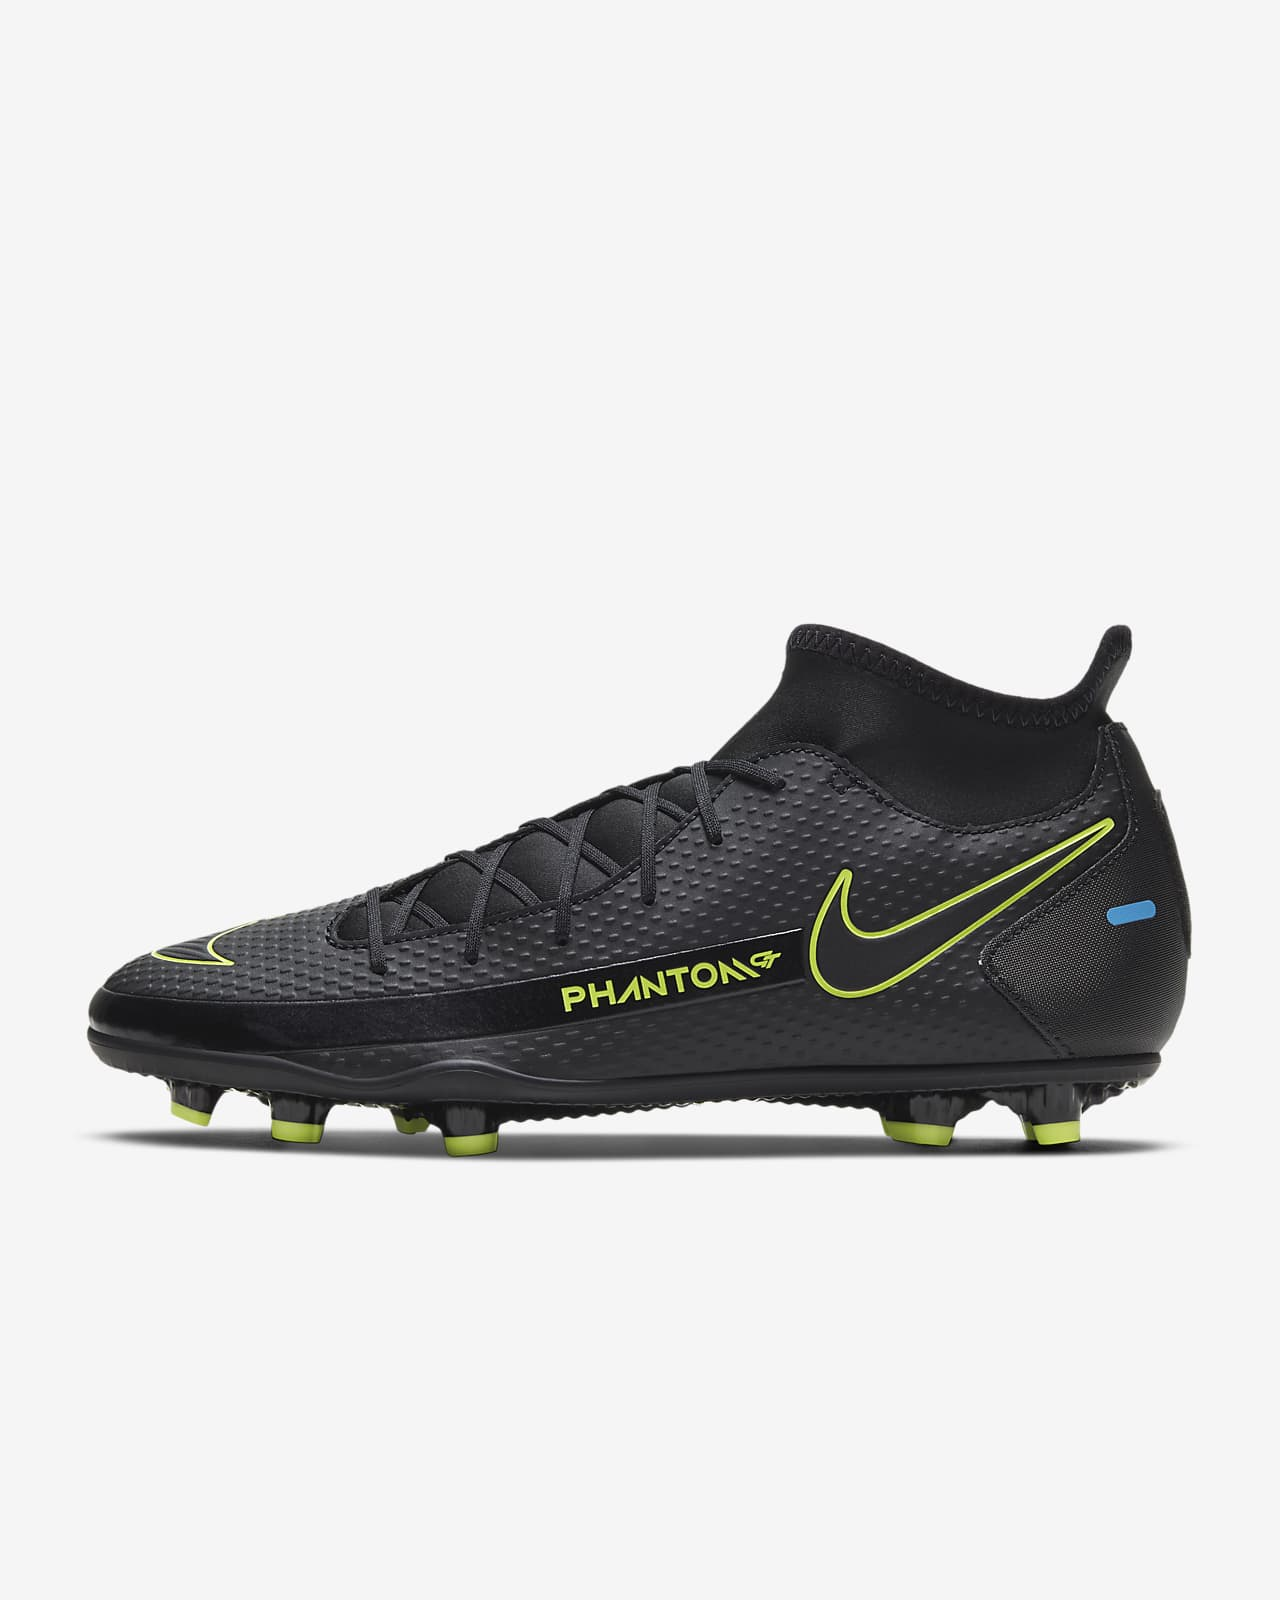 Calzado de fútbol para múltiples superficies Nike Phantom GT Club Dynamic Fit MG